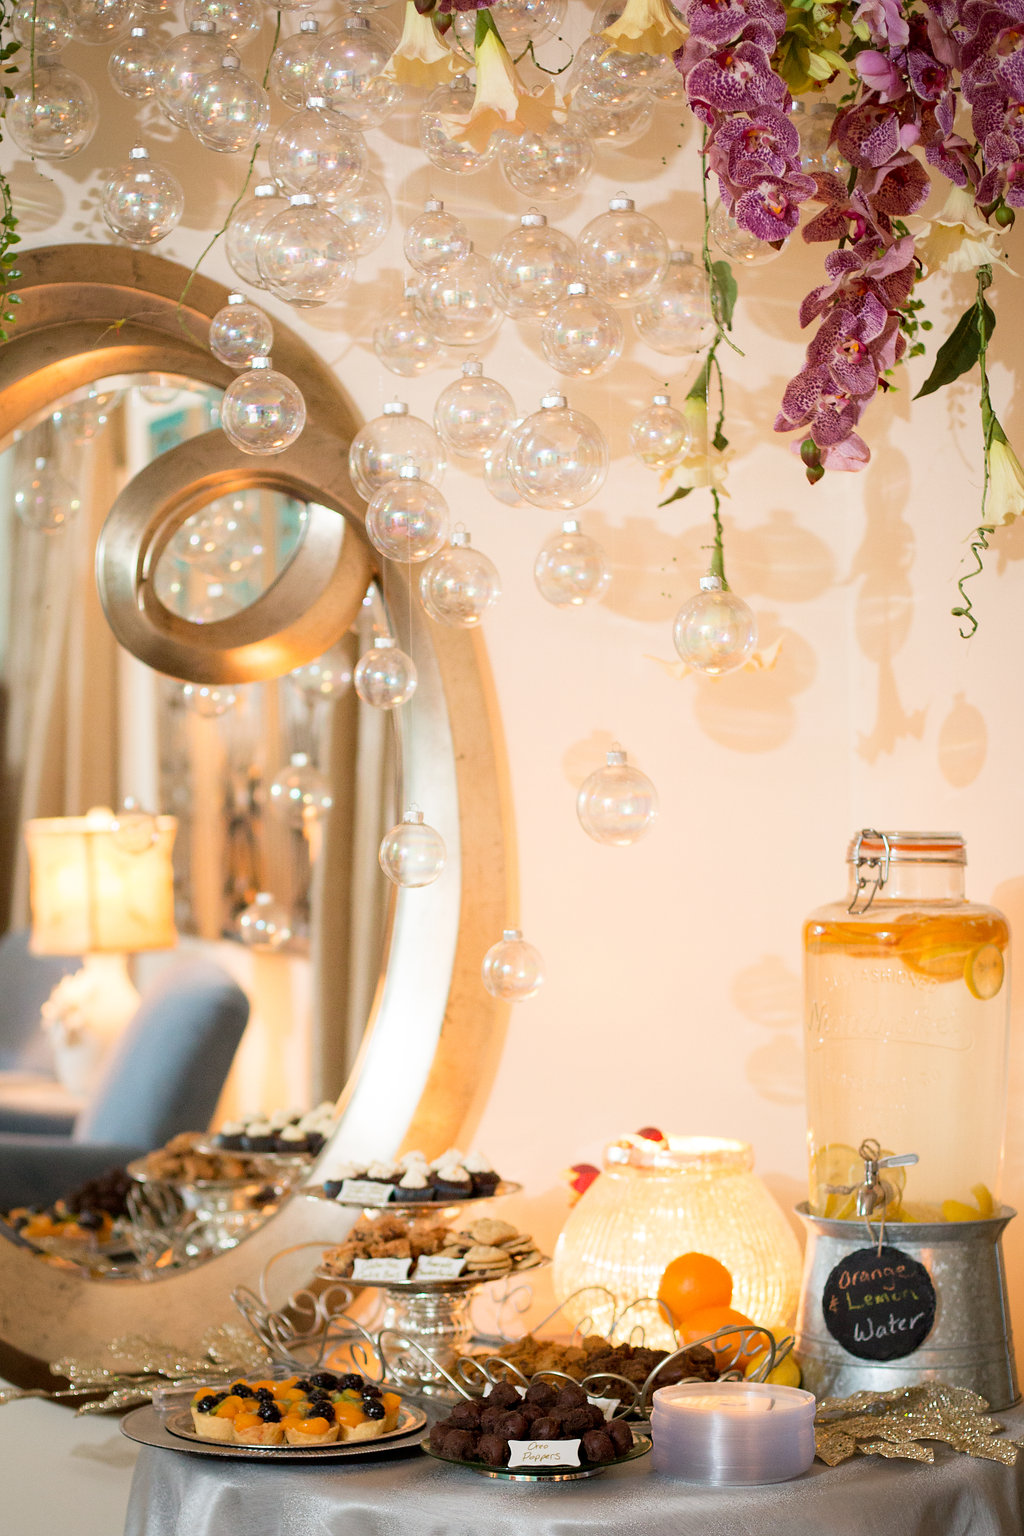 Spa Parties - Scents of Serenity Organic Spa